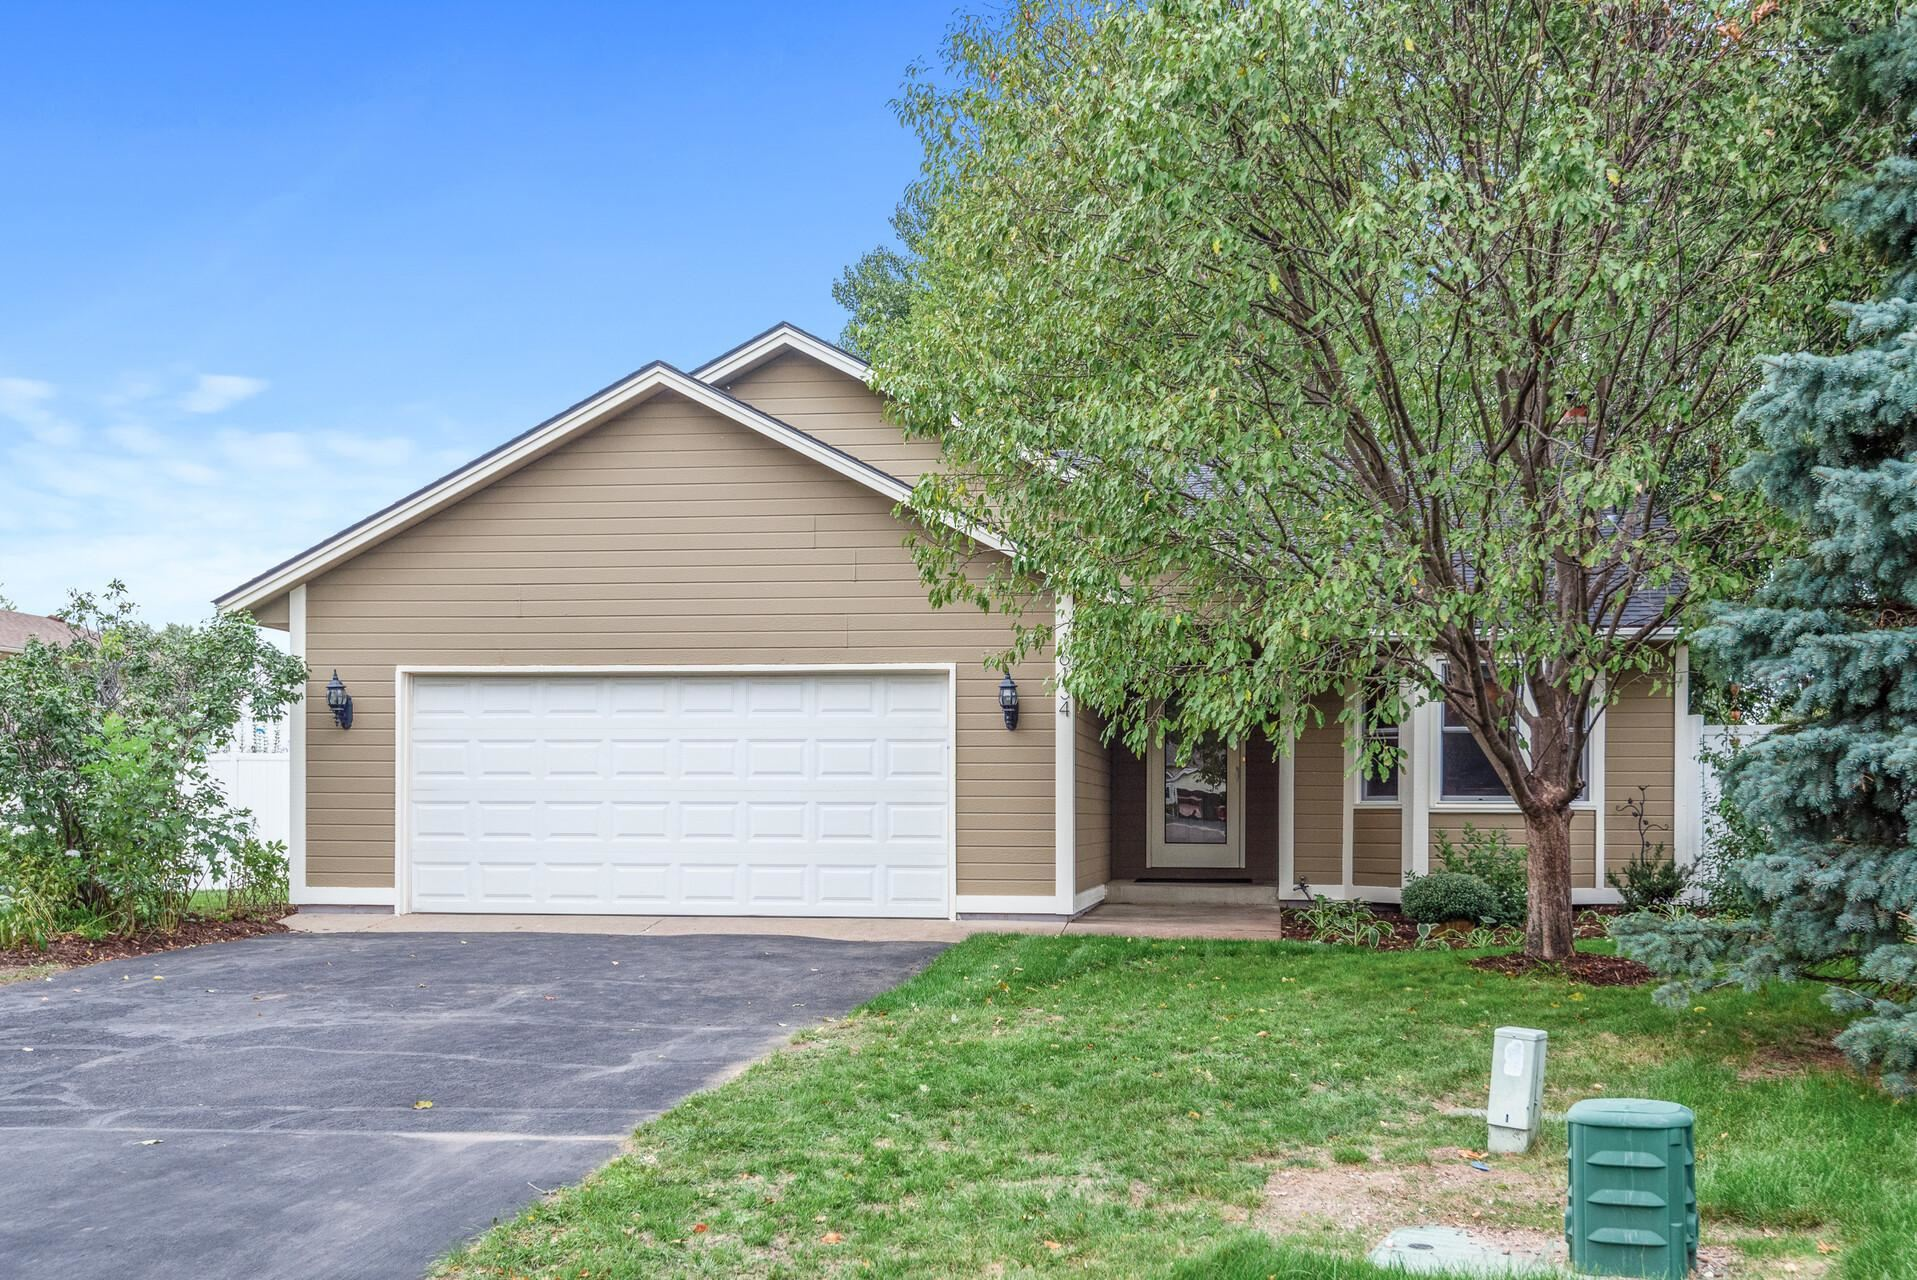 Photo of 16134 Excelsior Court, Lakeville, MN 55068 (MLS # 6098838)